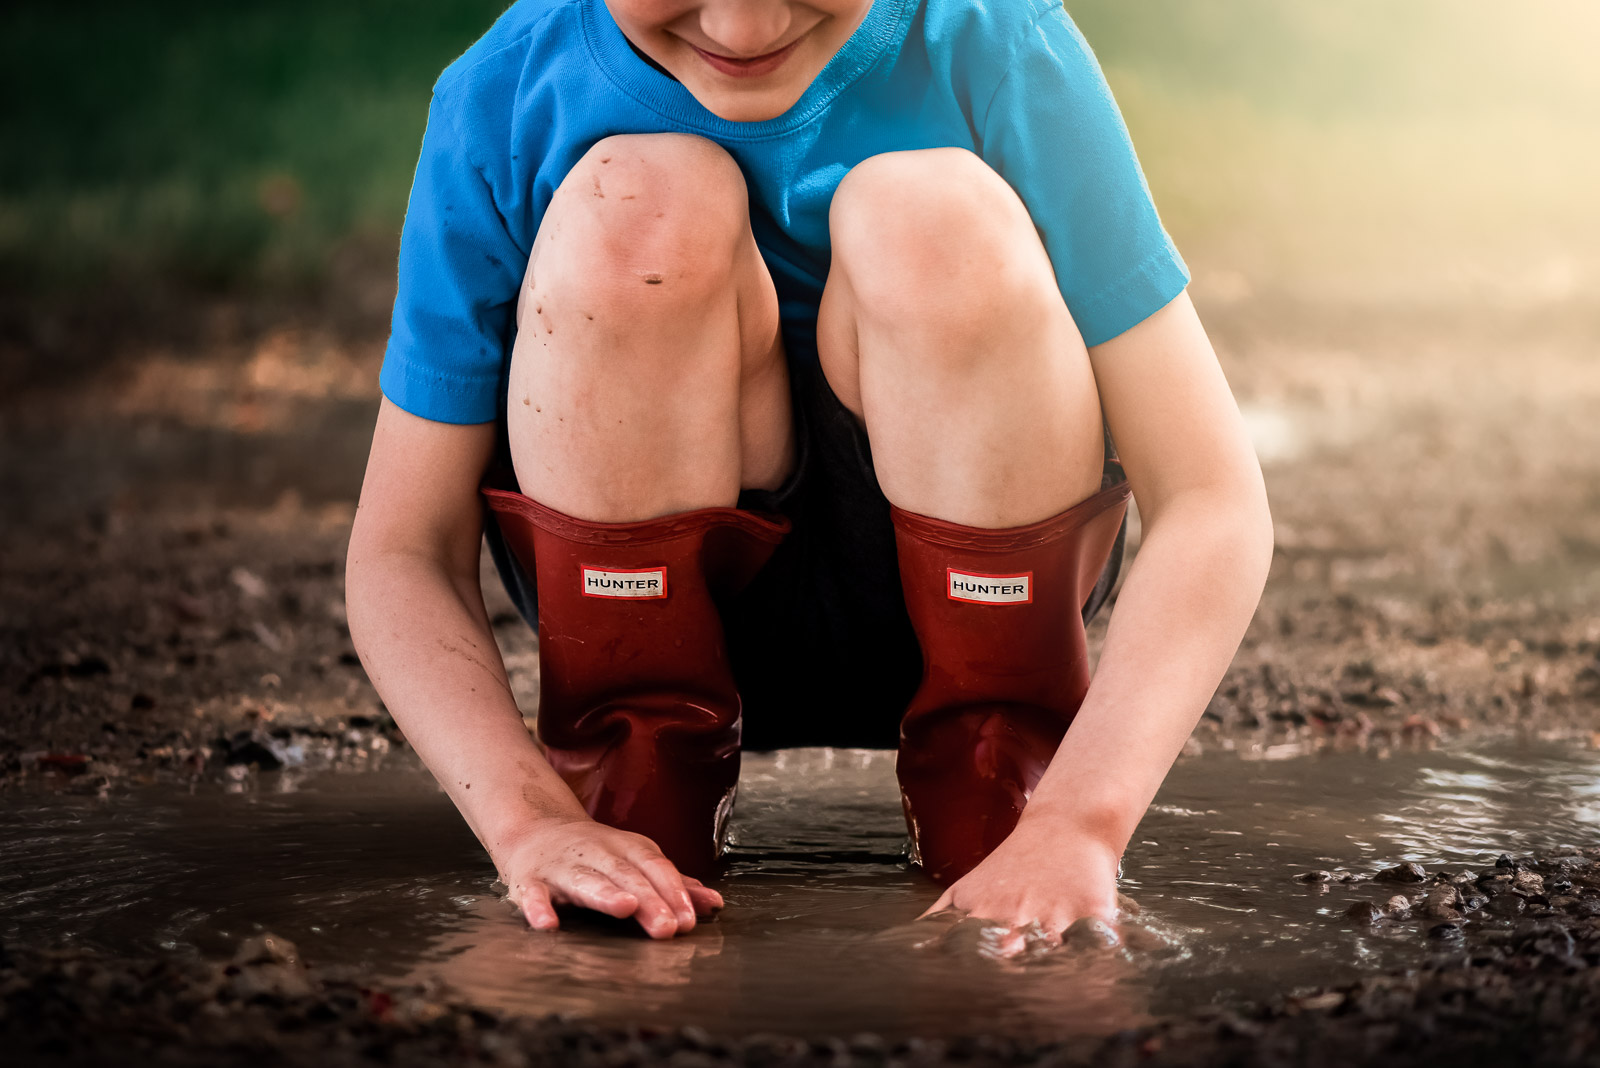 Photographing struggle - autistic child in mud puddle